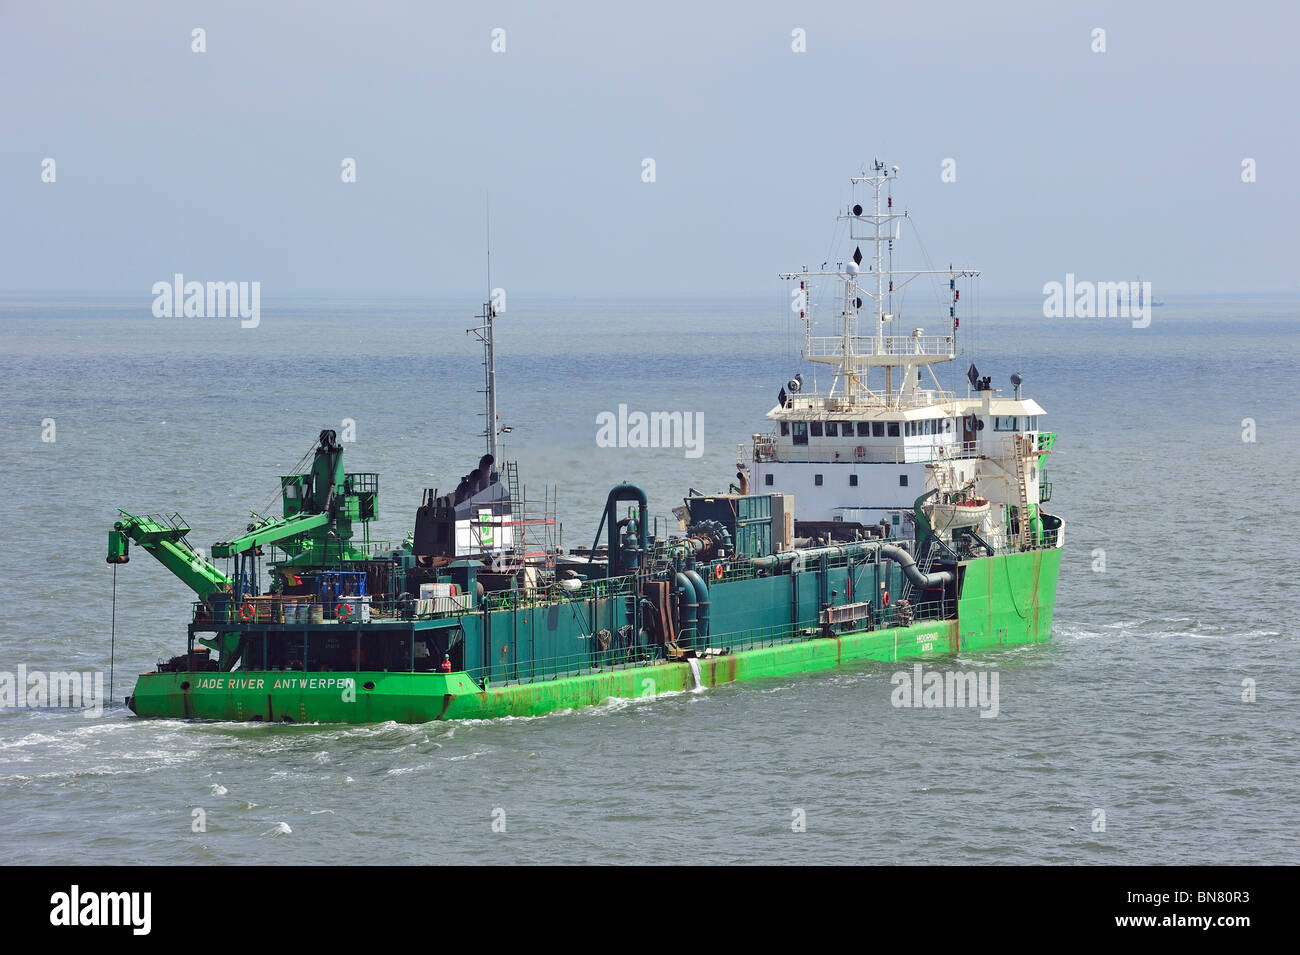 The dredger Jade River on the North Sea, Belgium - Stock Image